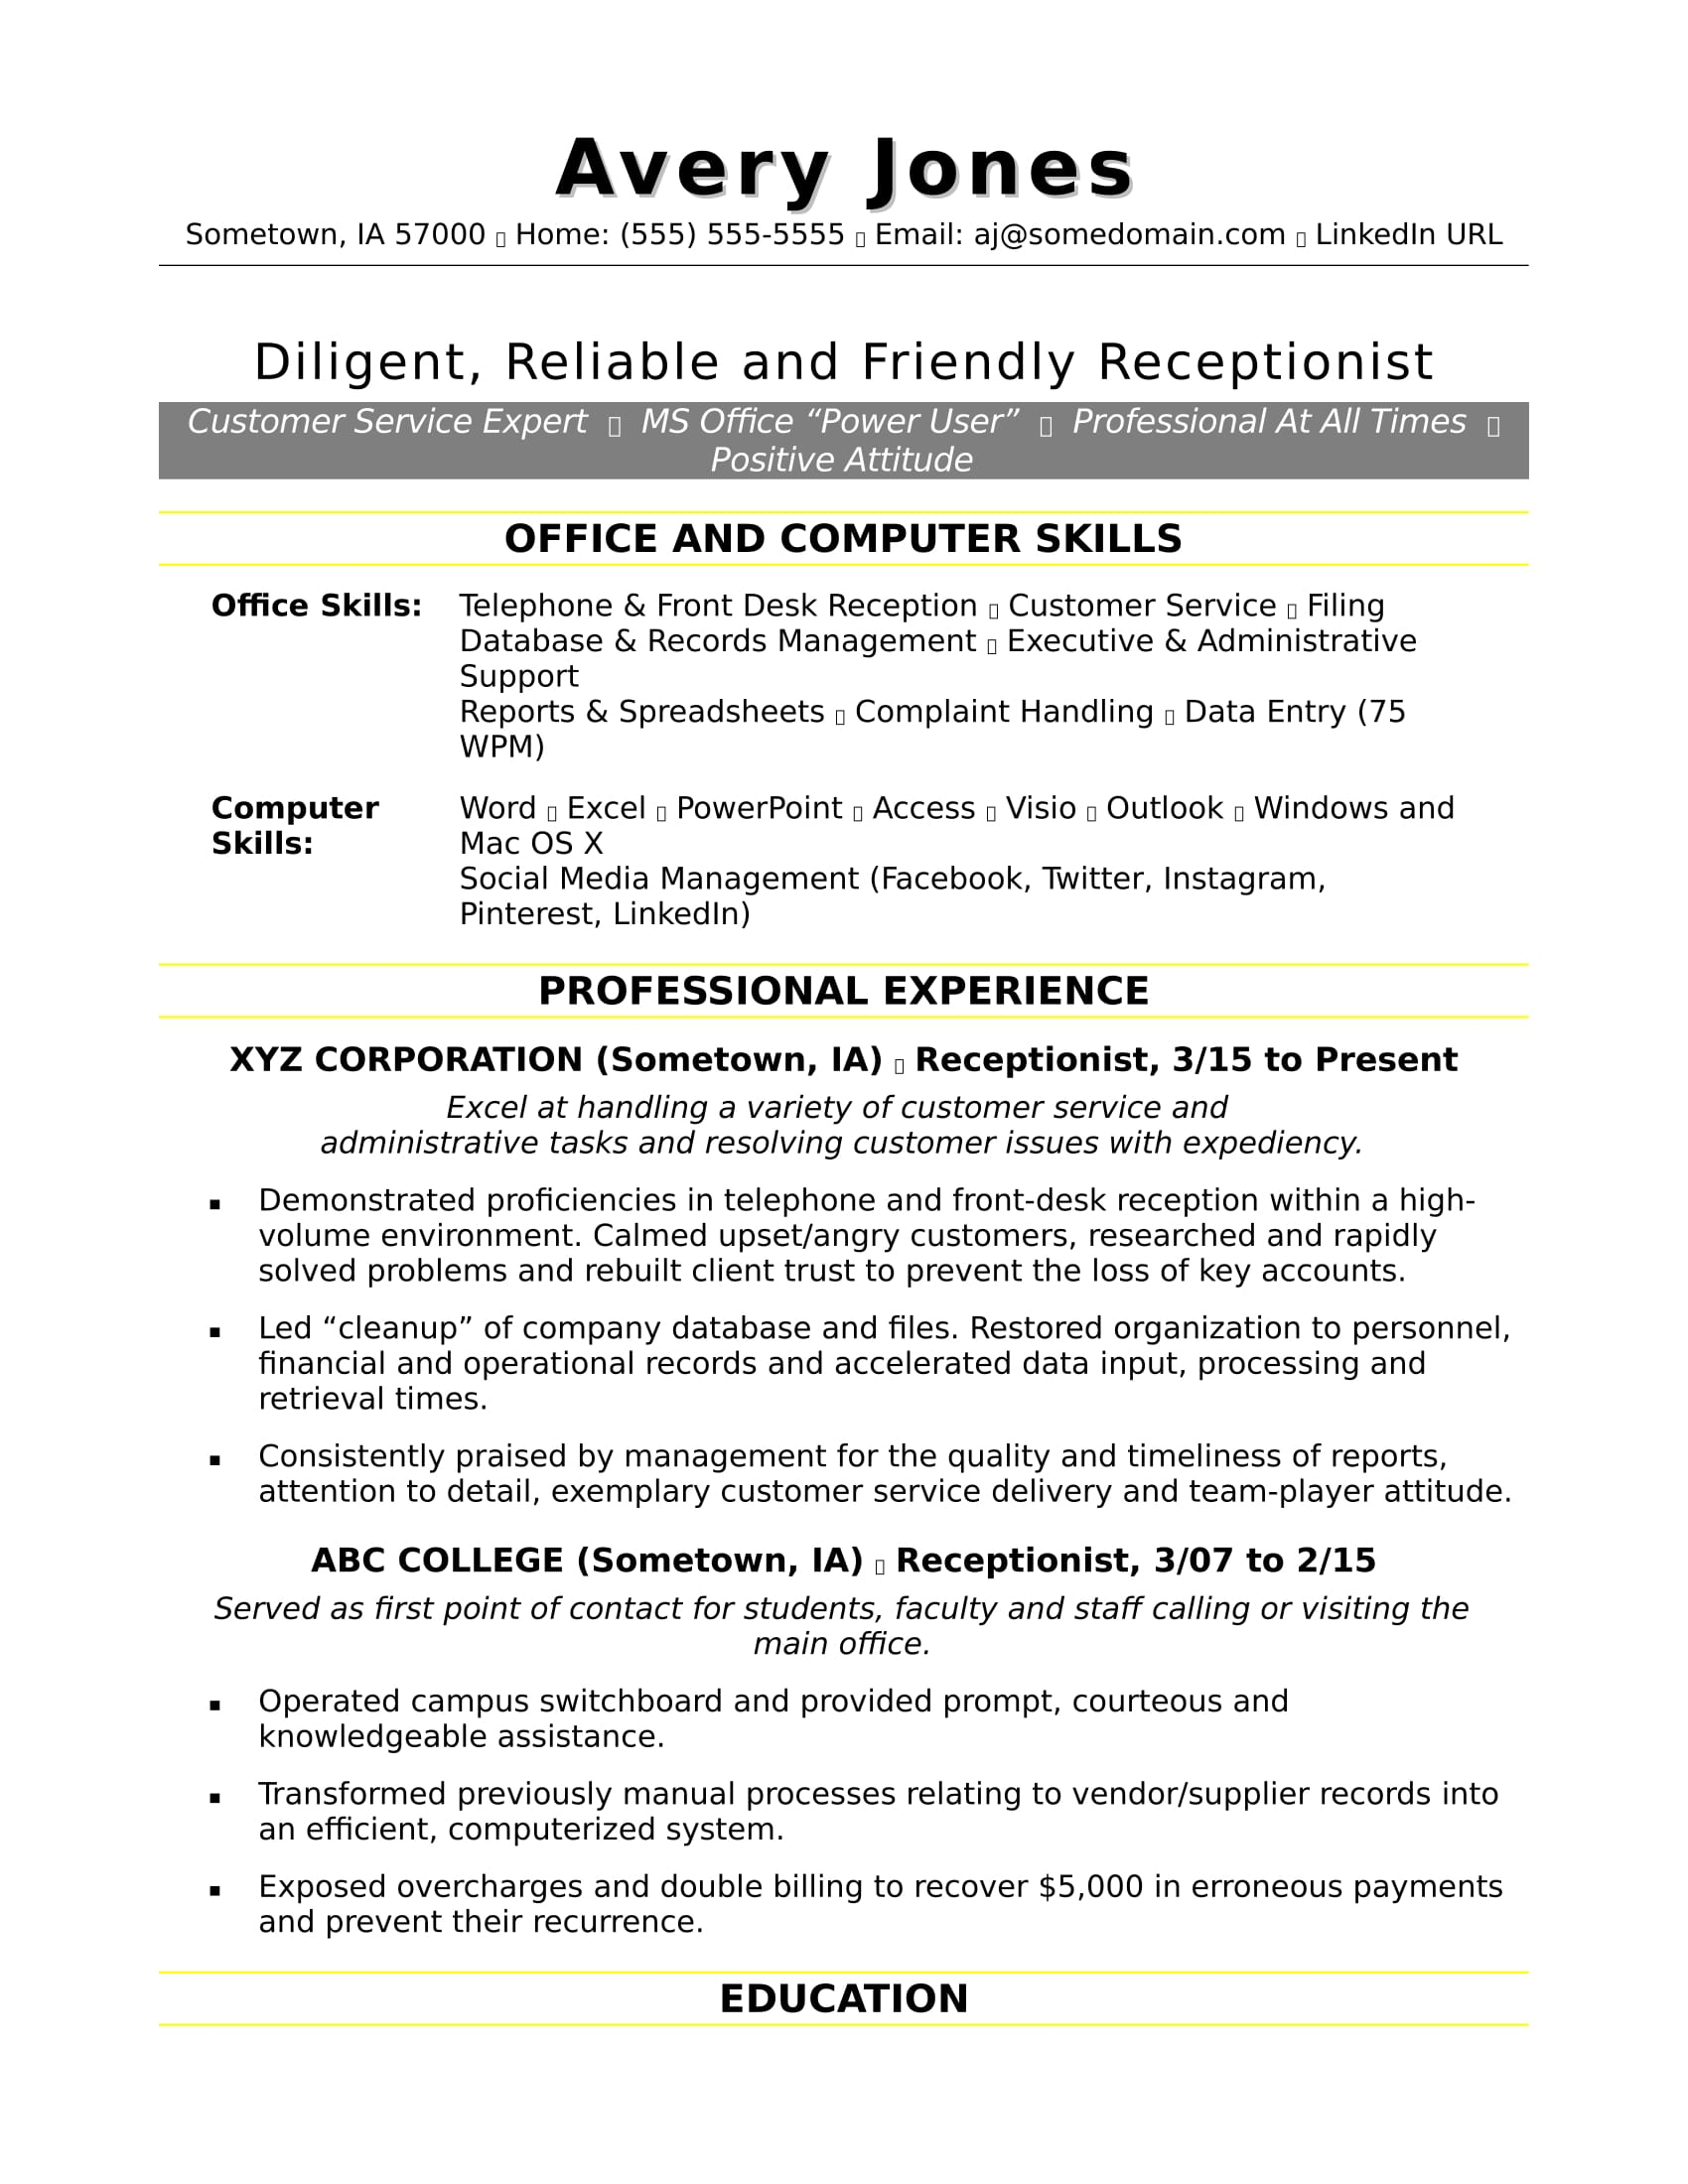 Beautiful Sample Resume For A Receptionist Inside Receptionist Resume Skills